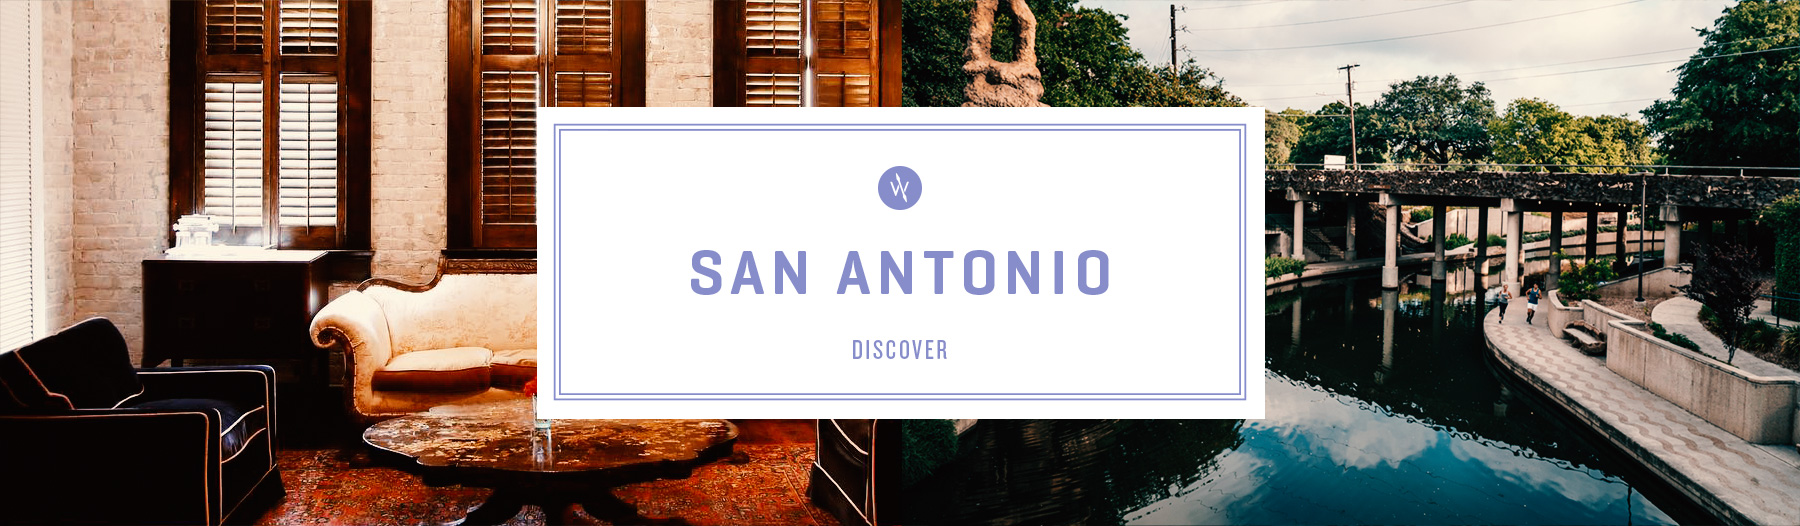 WILDSAM-San_Antonio-HEADER.jpg